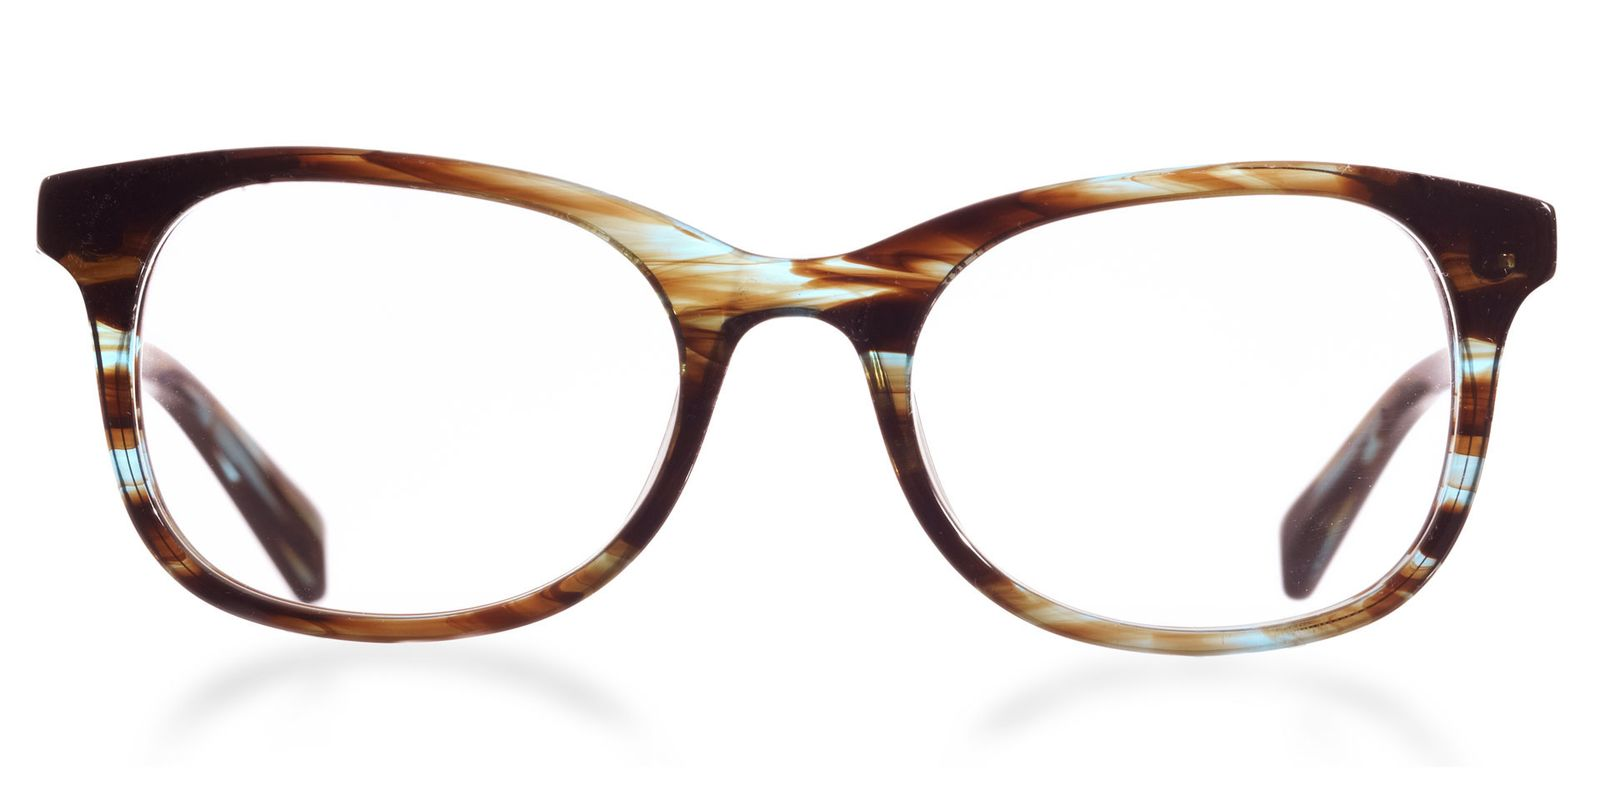 Eyeglasses Frame Trends 2016 : Best Online Prescription Glasses - Reviews of Sites to ...